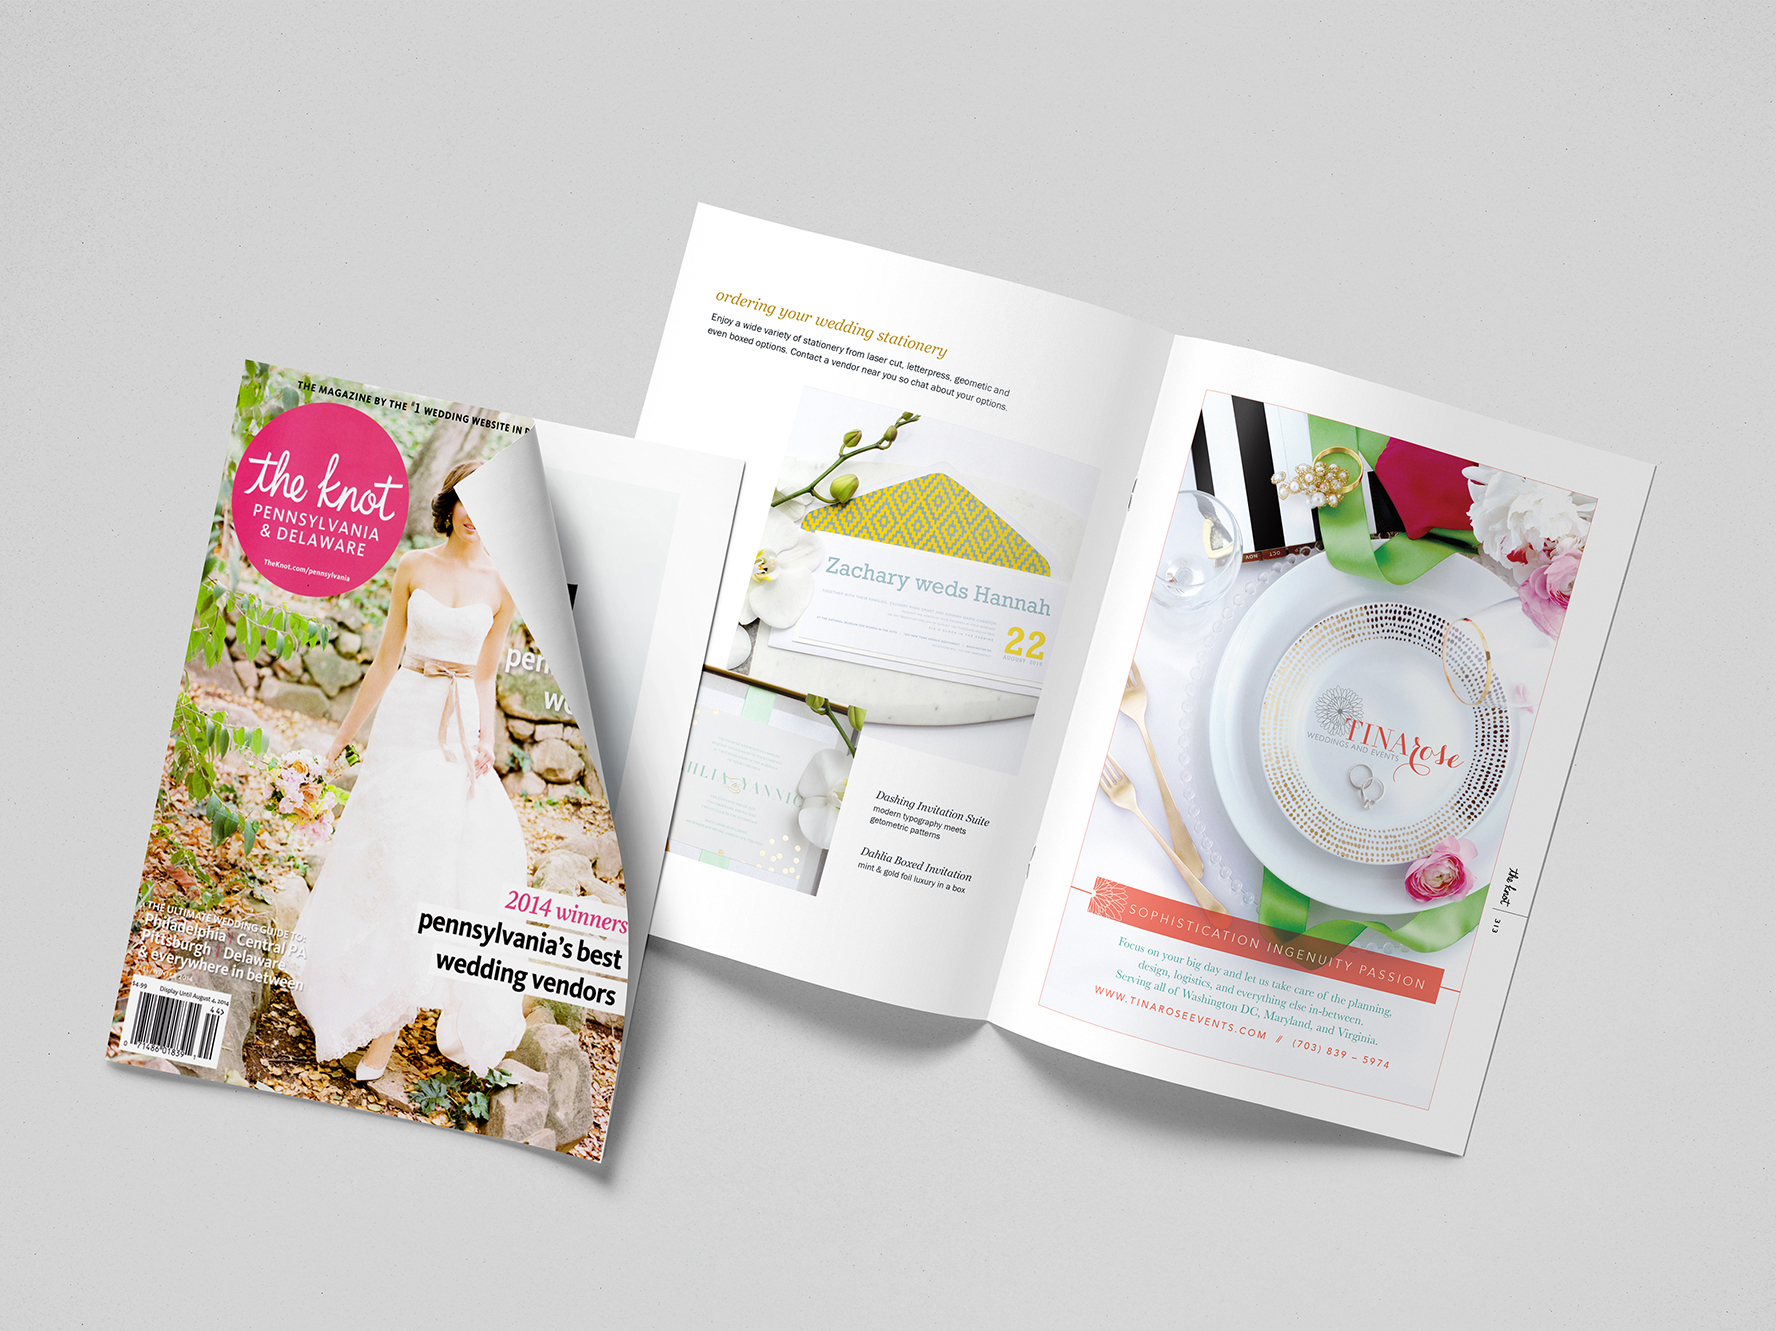 TinaRose Weddings and Events' The Knot Magazine Ad